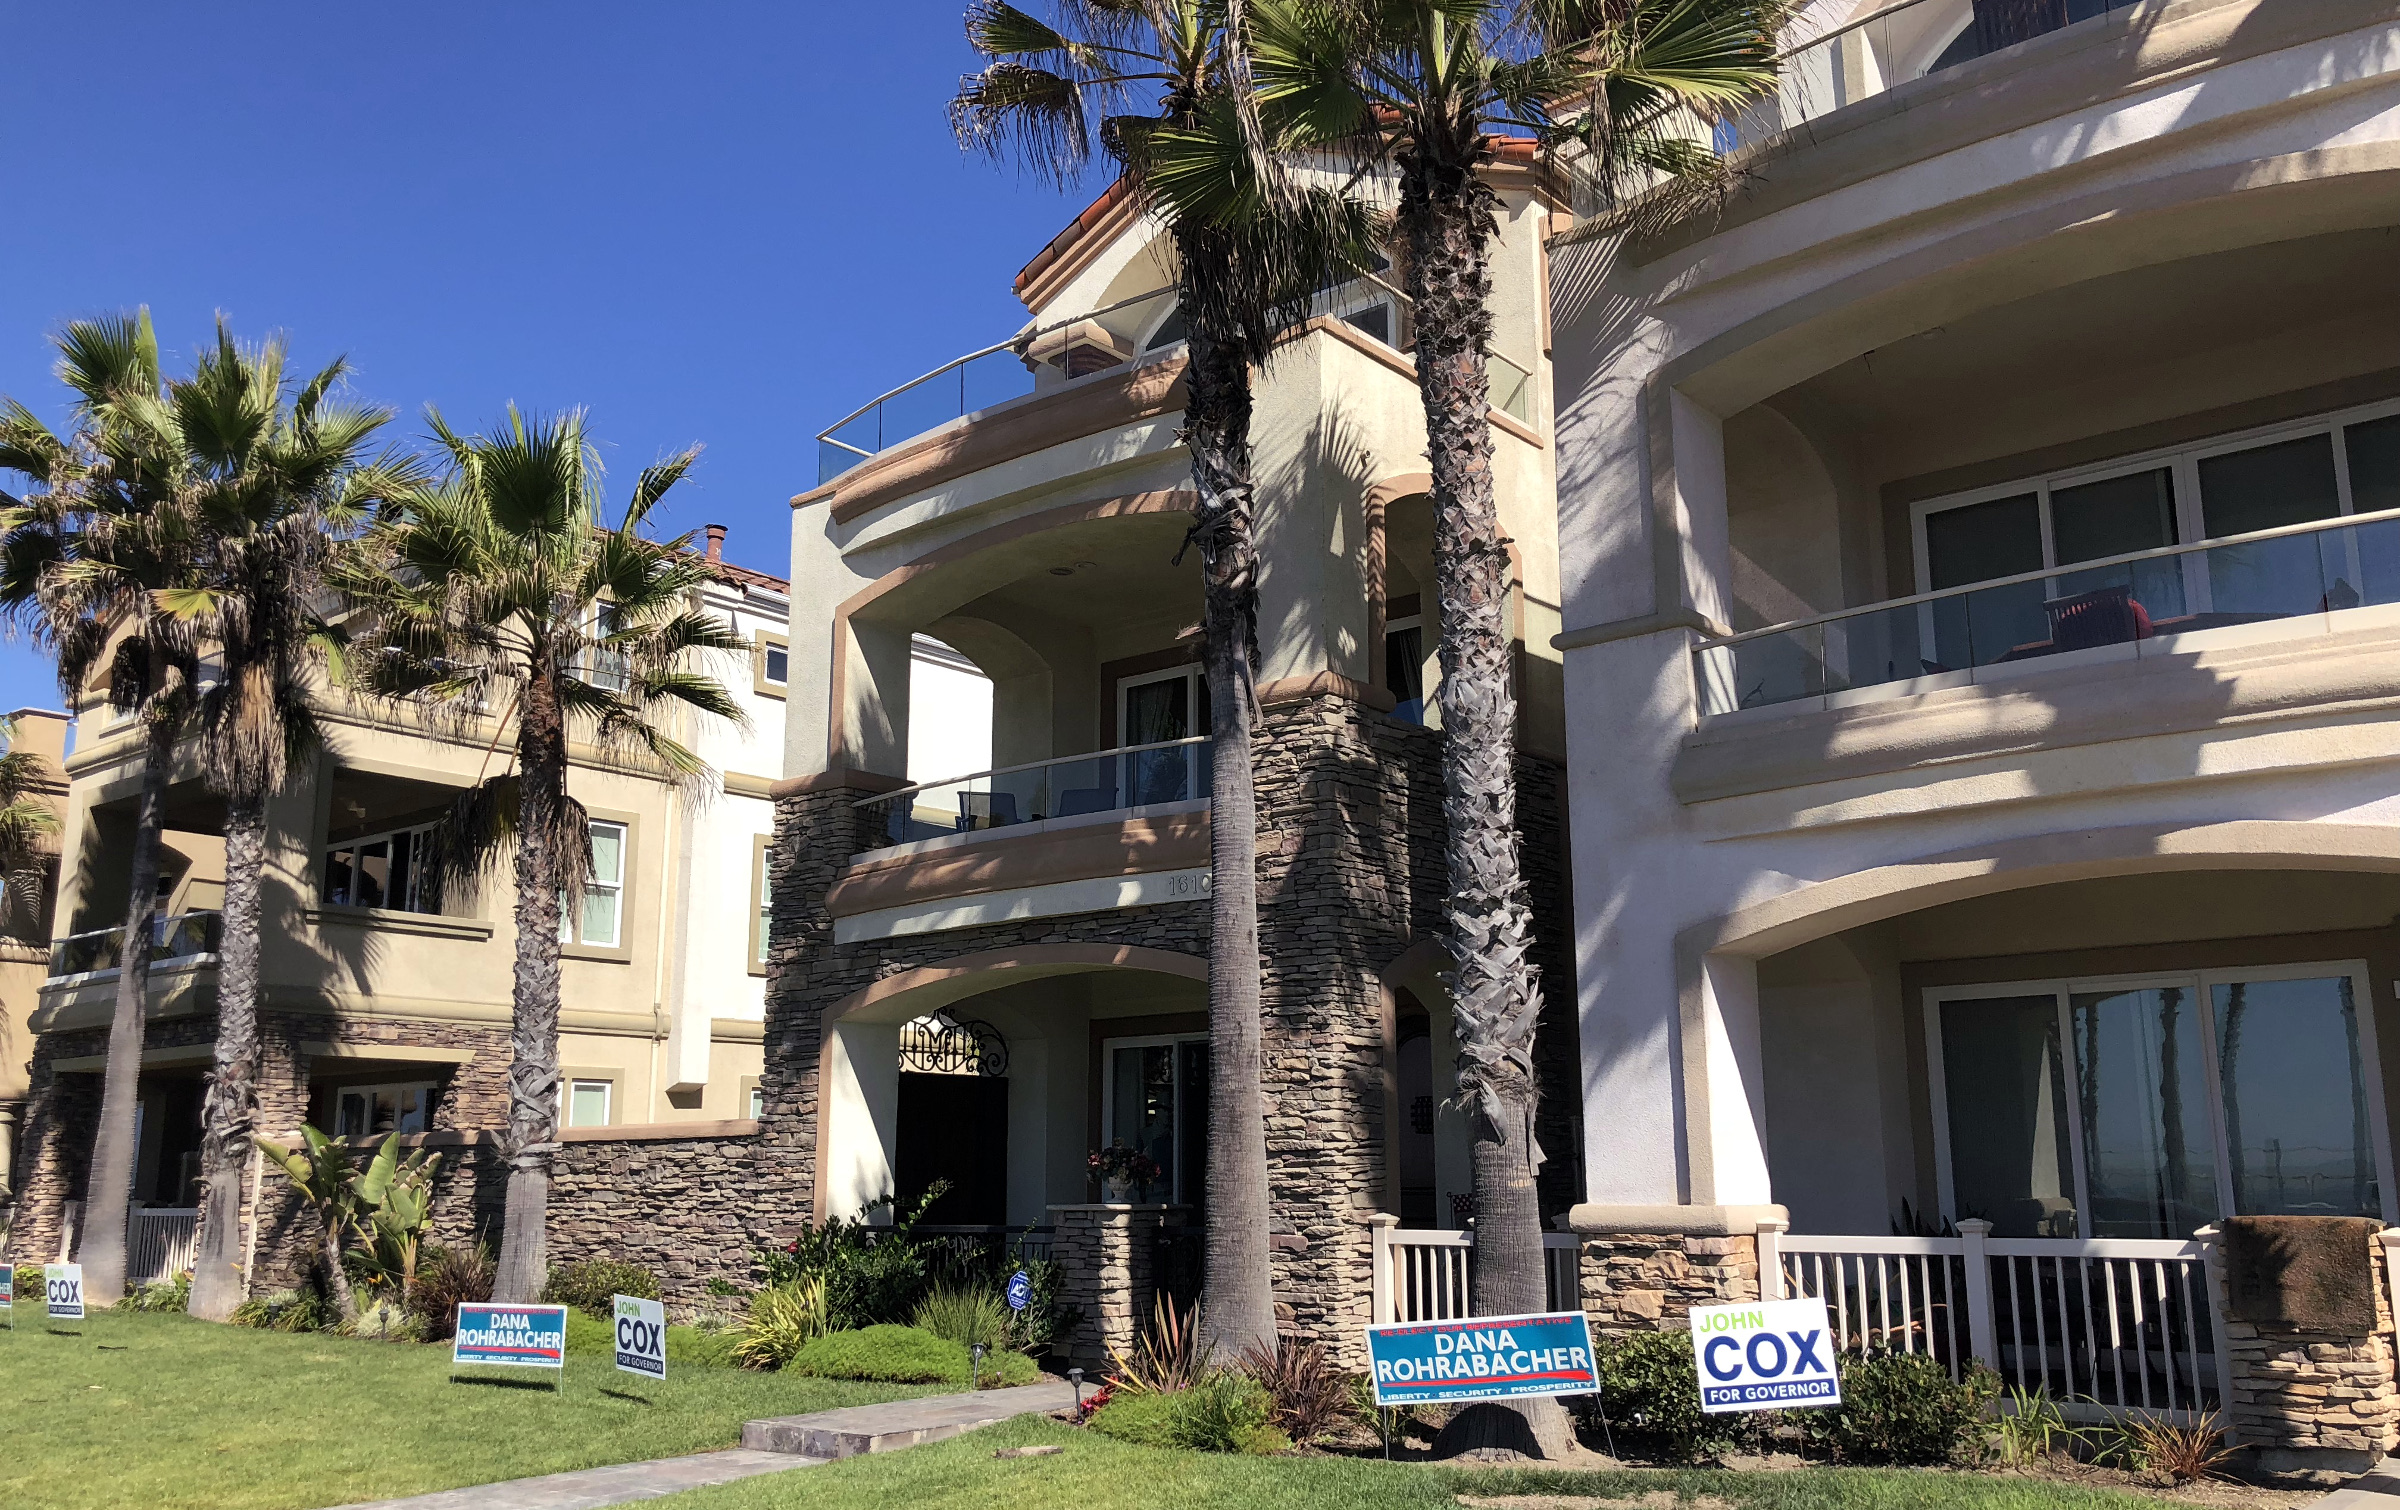 Beachfront homes host signs backing Rohrabacher.